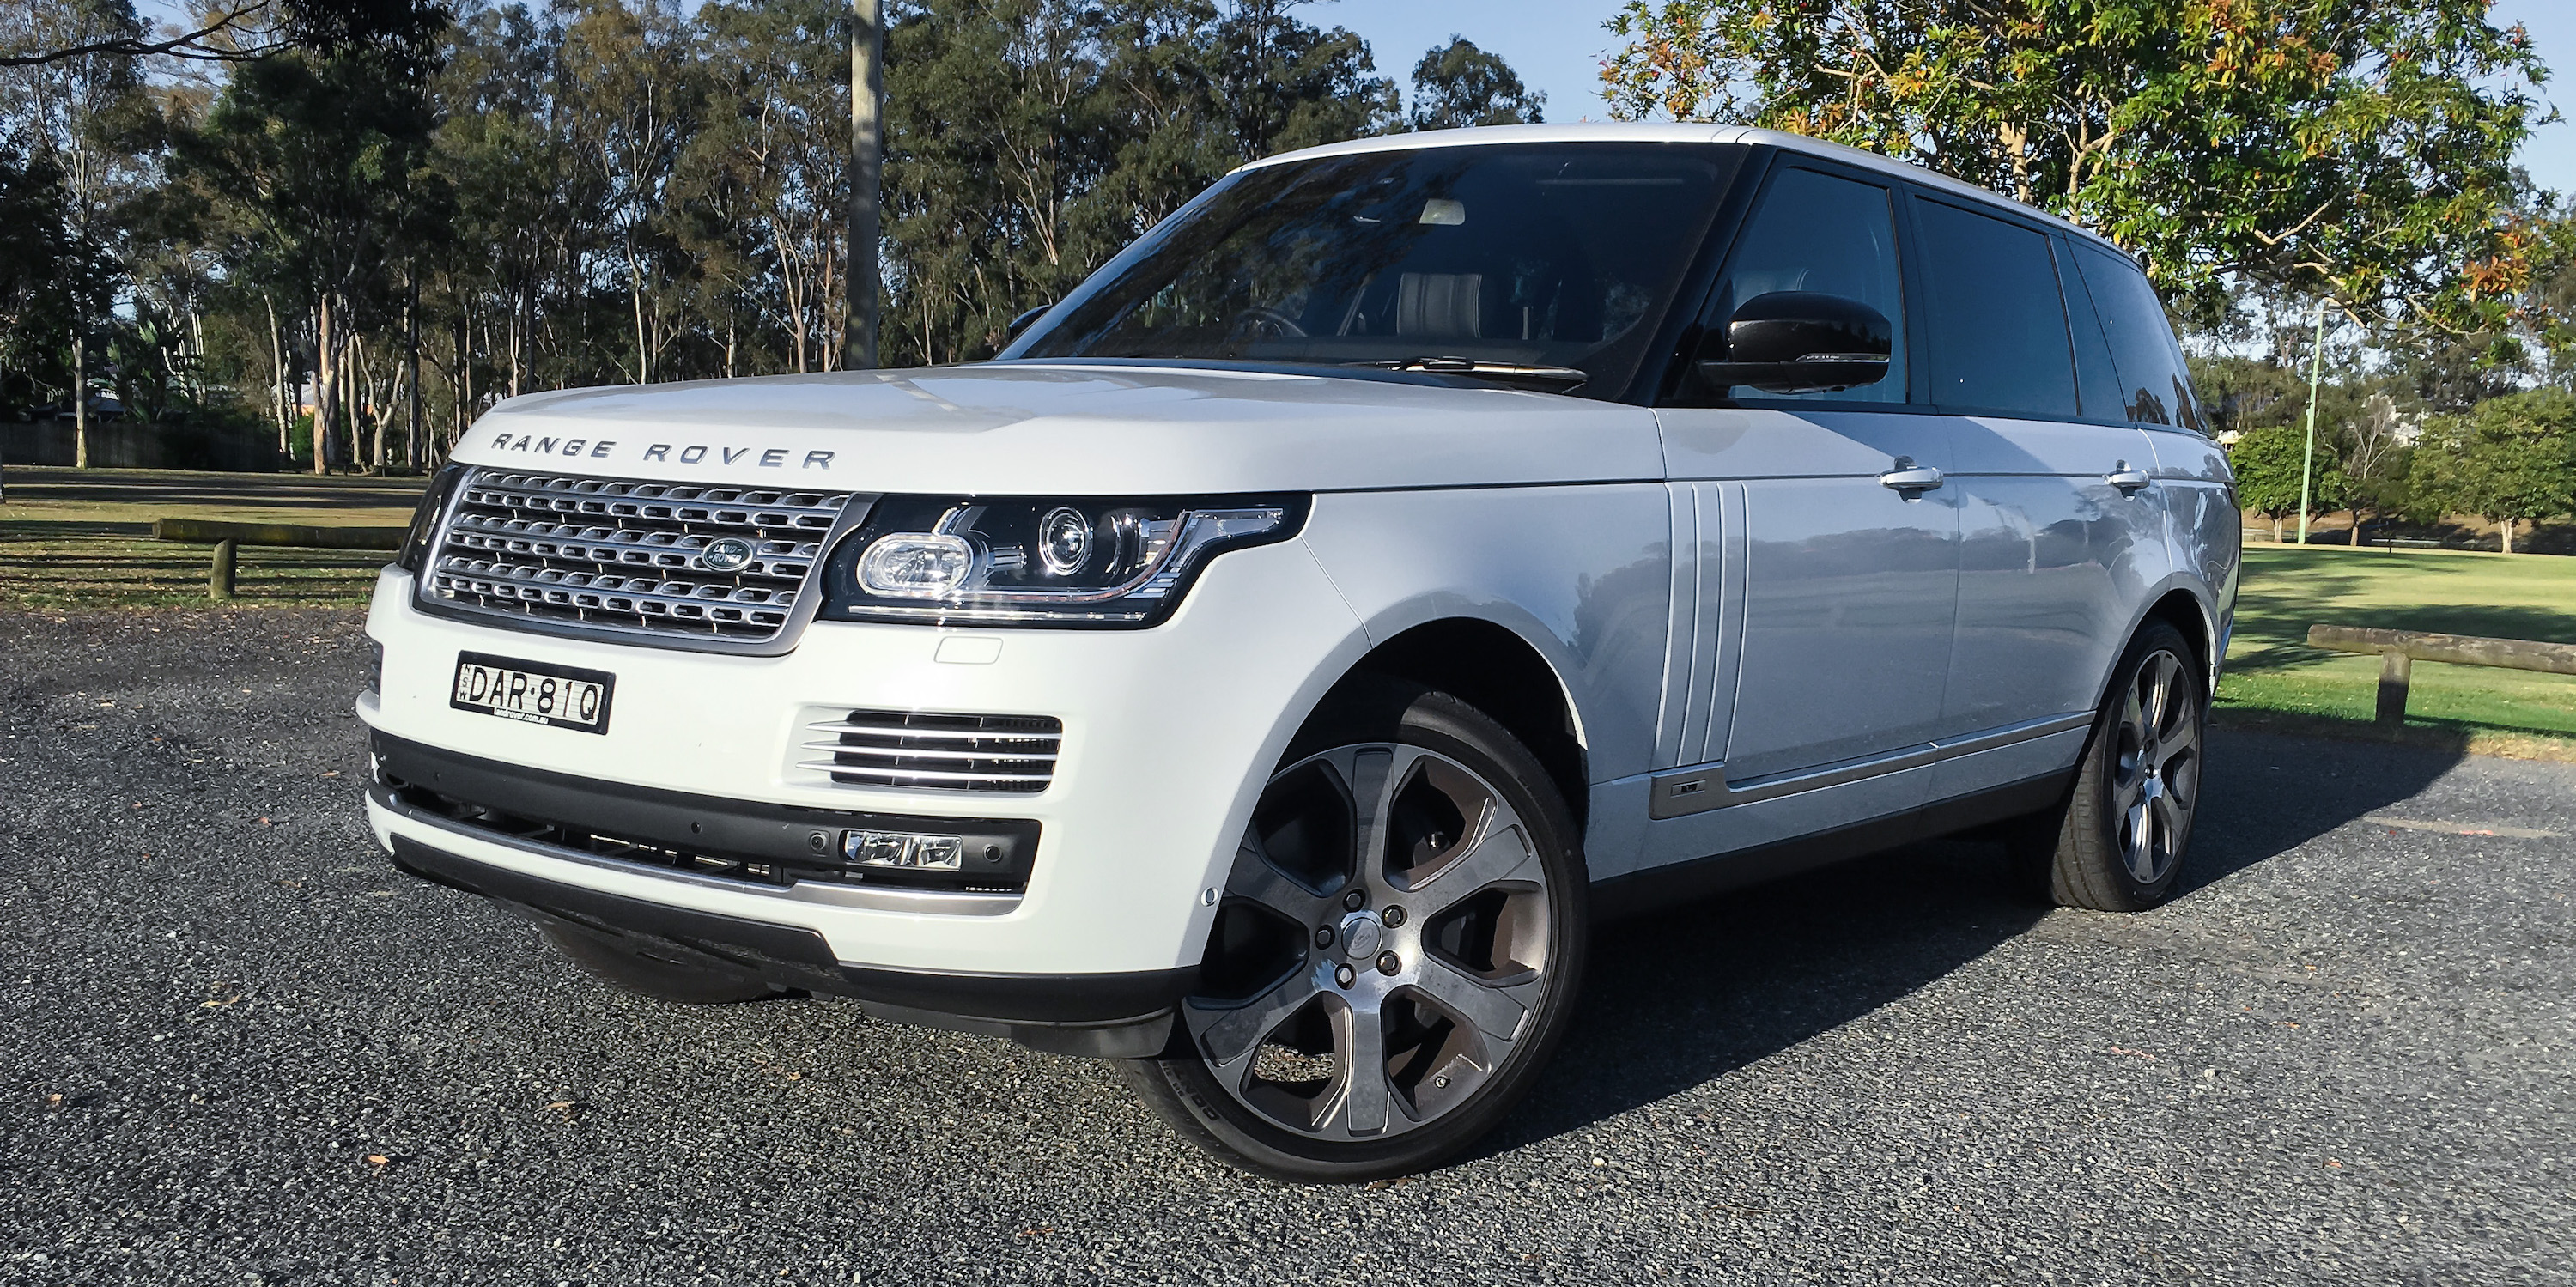 2016 range rover autobiography lwb review caradvice. Black Bedroom Furniture Sets. Home Design Ideas